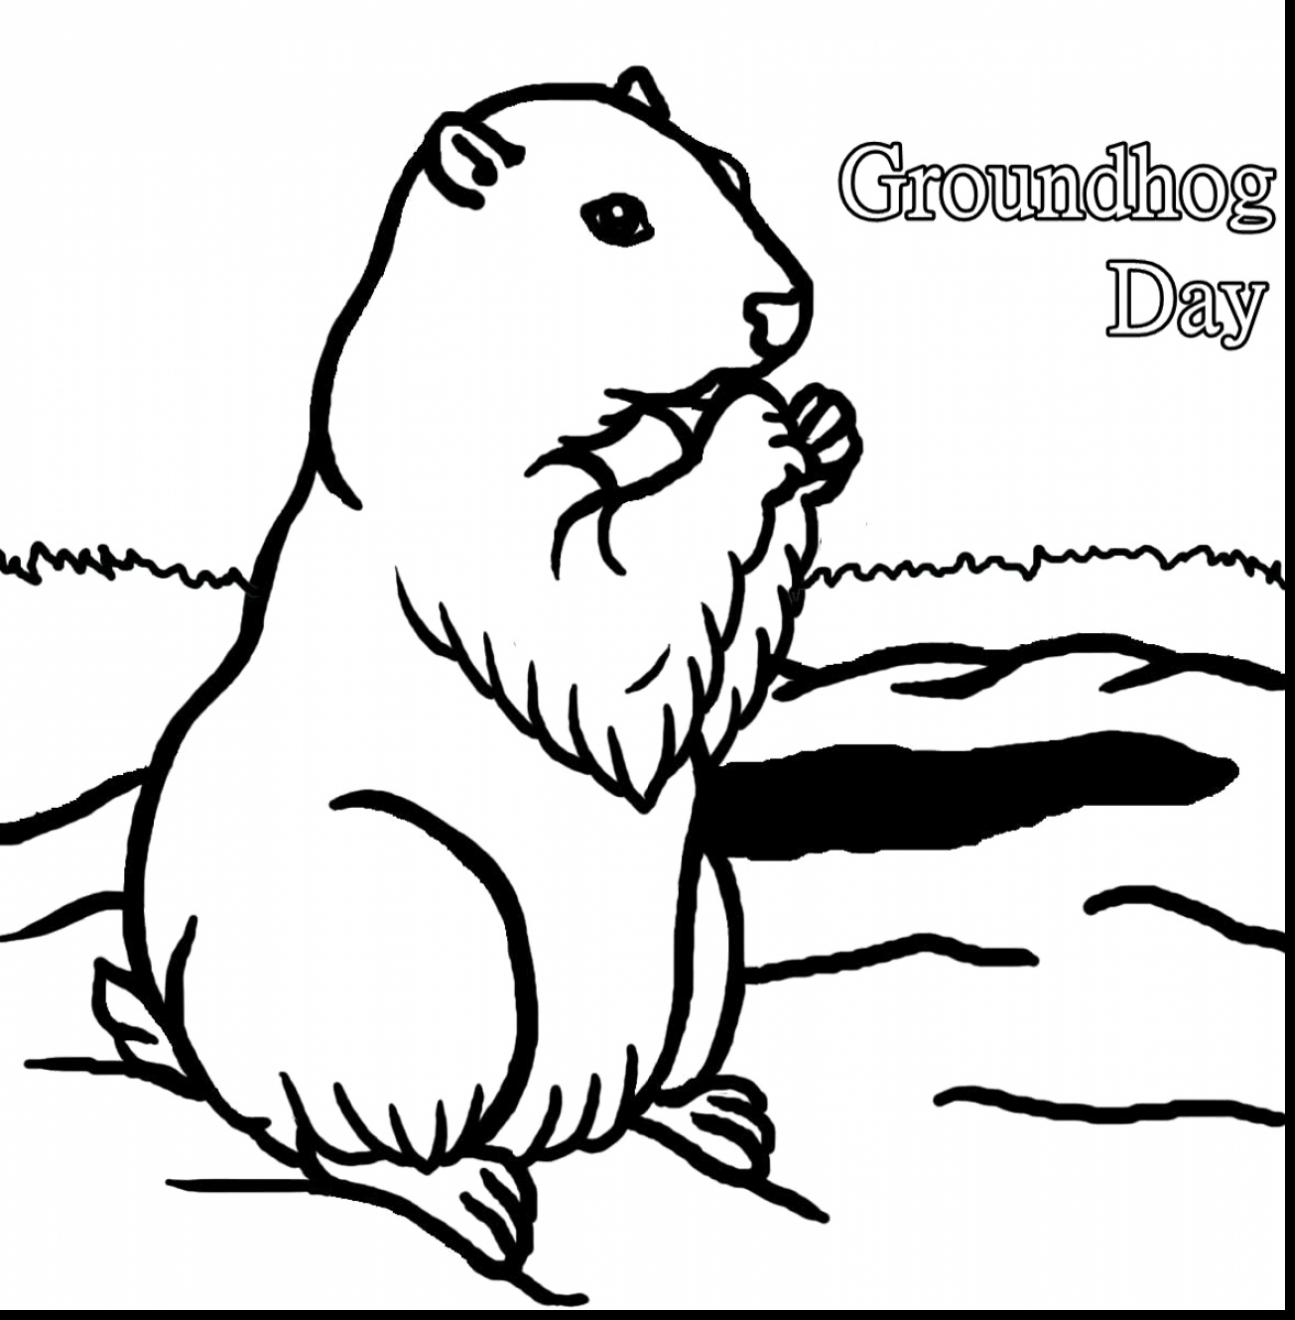 groundhog pictures to color groundhogs free coloring pages to groundhog pictures color